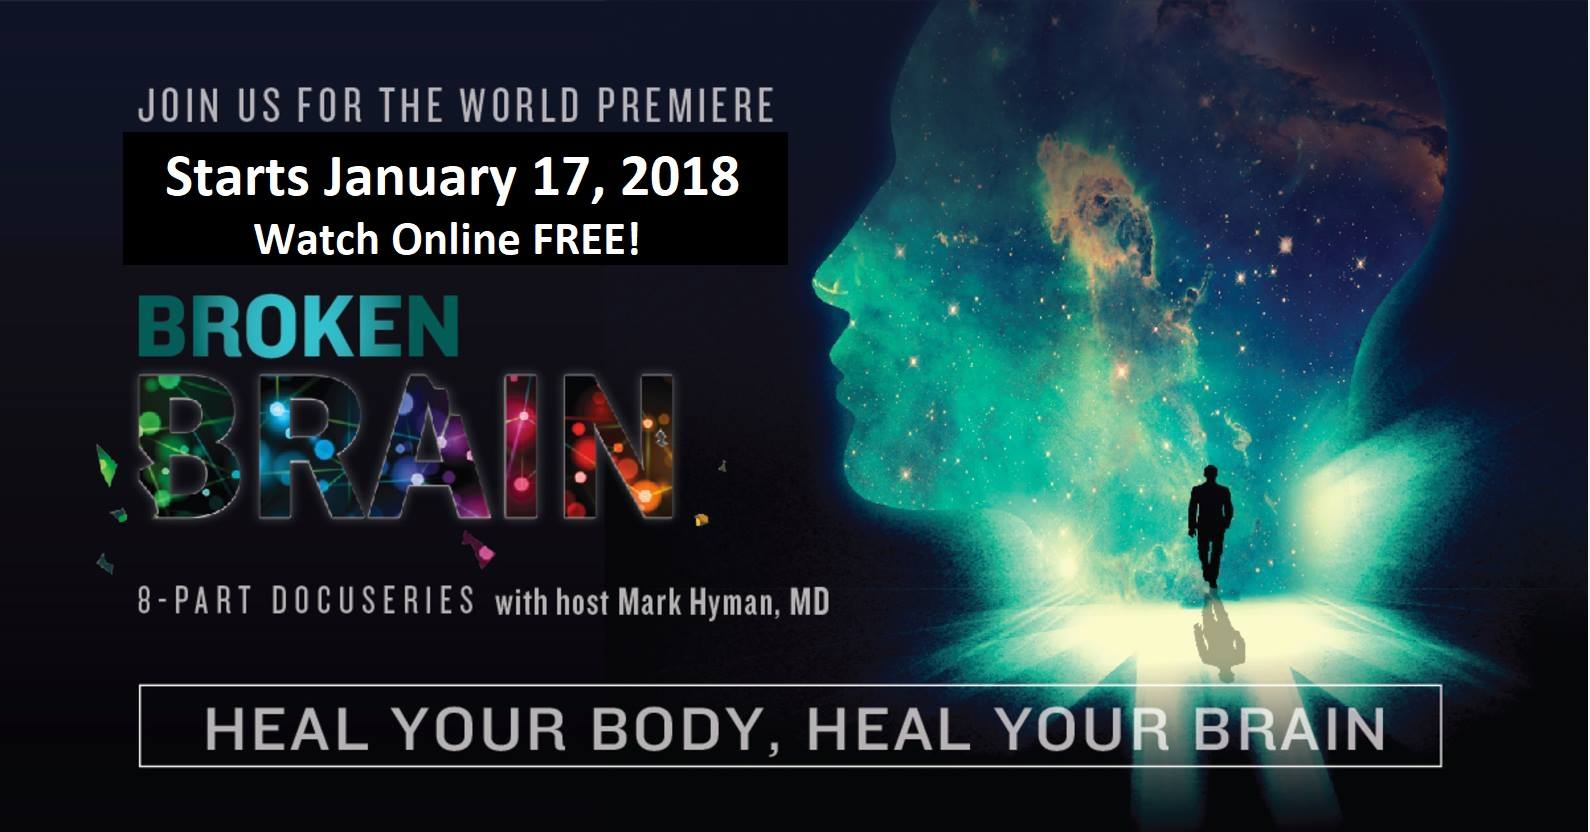 Broken Brain Dr Mark Hyman Presents Free Online Series On Holistic